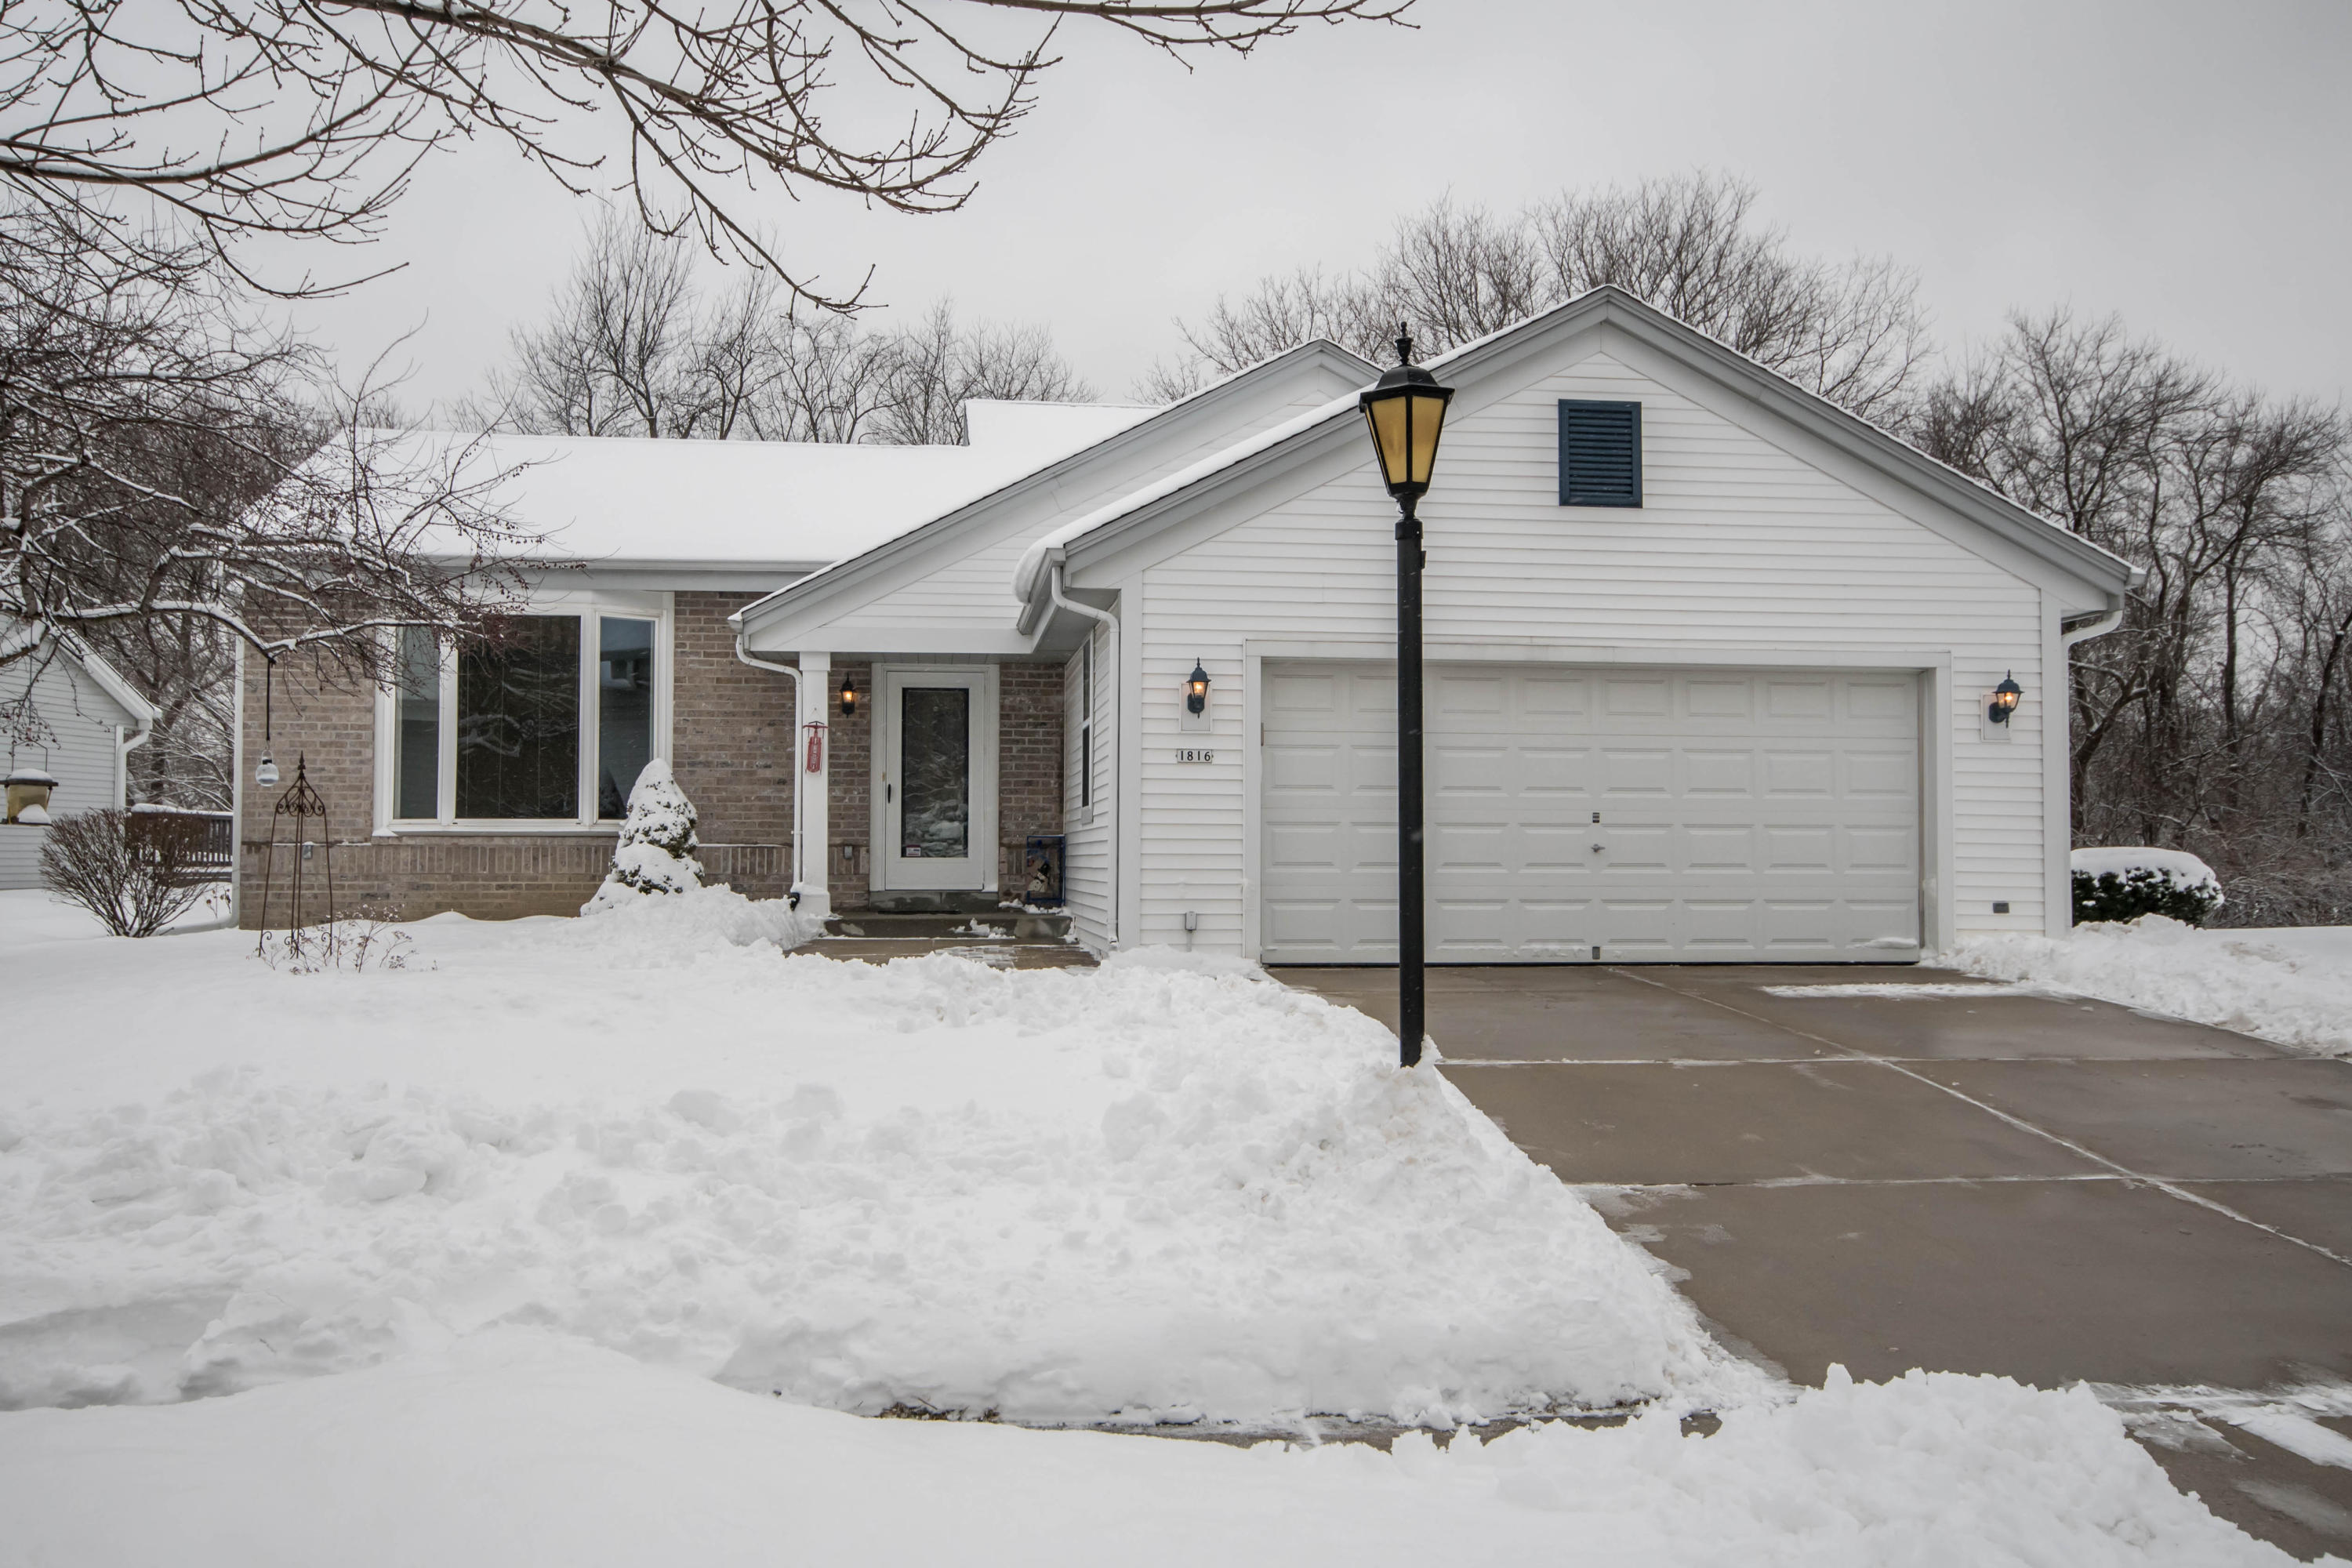 1816 Wexford Ln, Waukesha, Wisconsin 53186, 3 Bedrooms Bedrooms, 6 Rooms Rooms,2 BathroomsBathrooms,Single-Family,For Sale,Wexford Ln,1622629